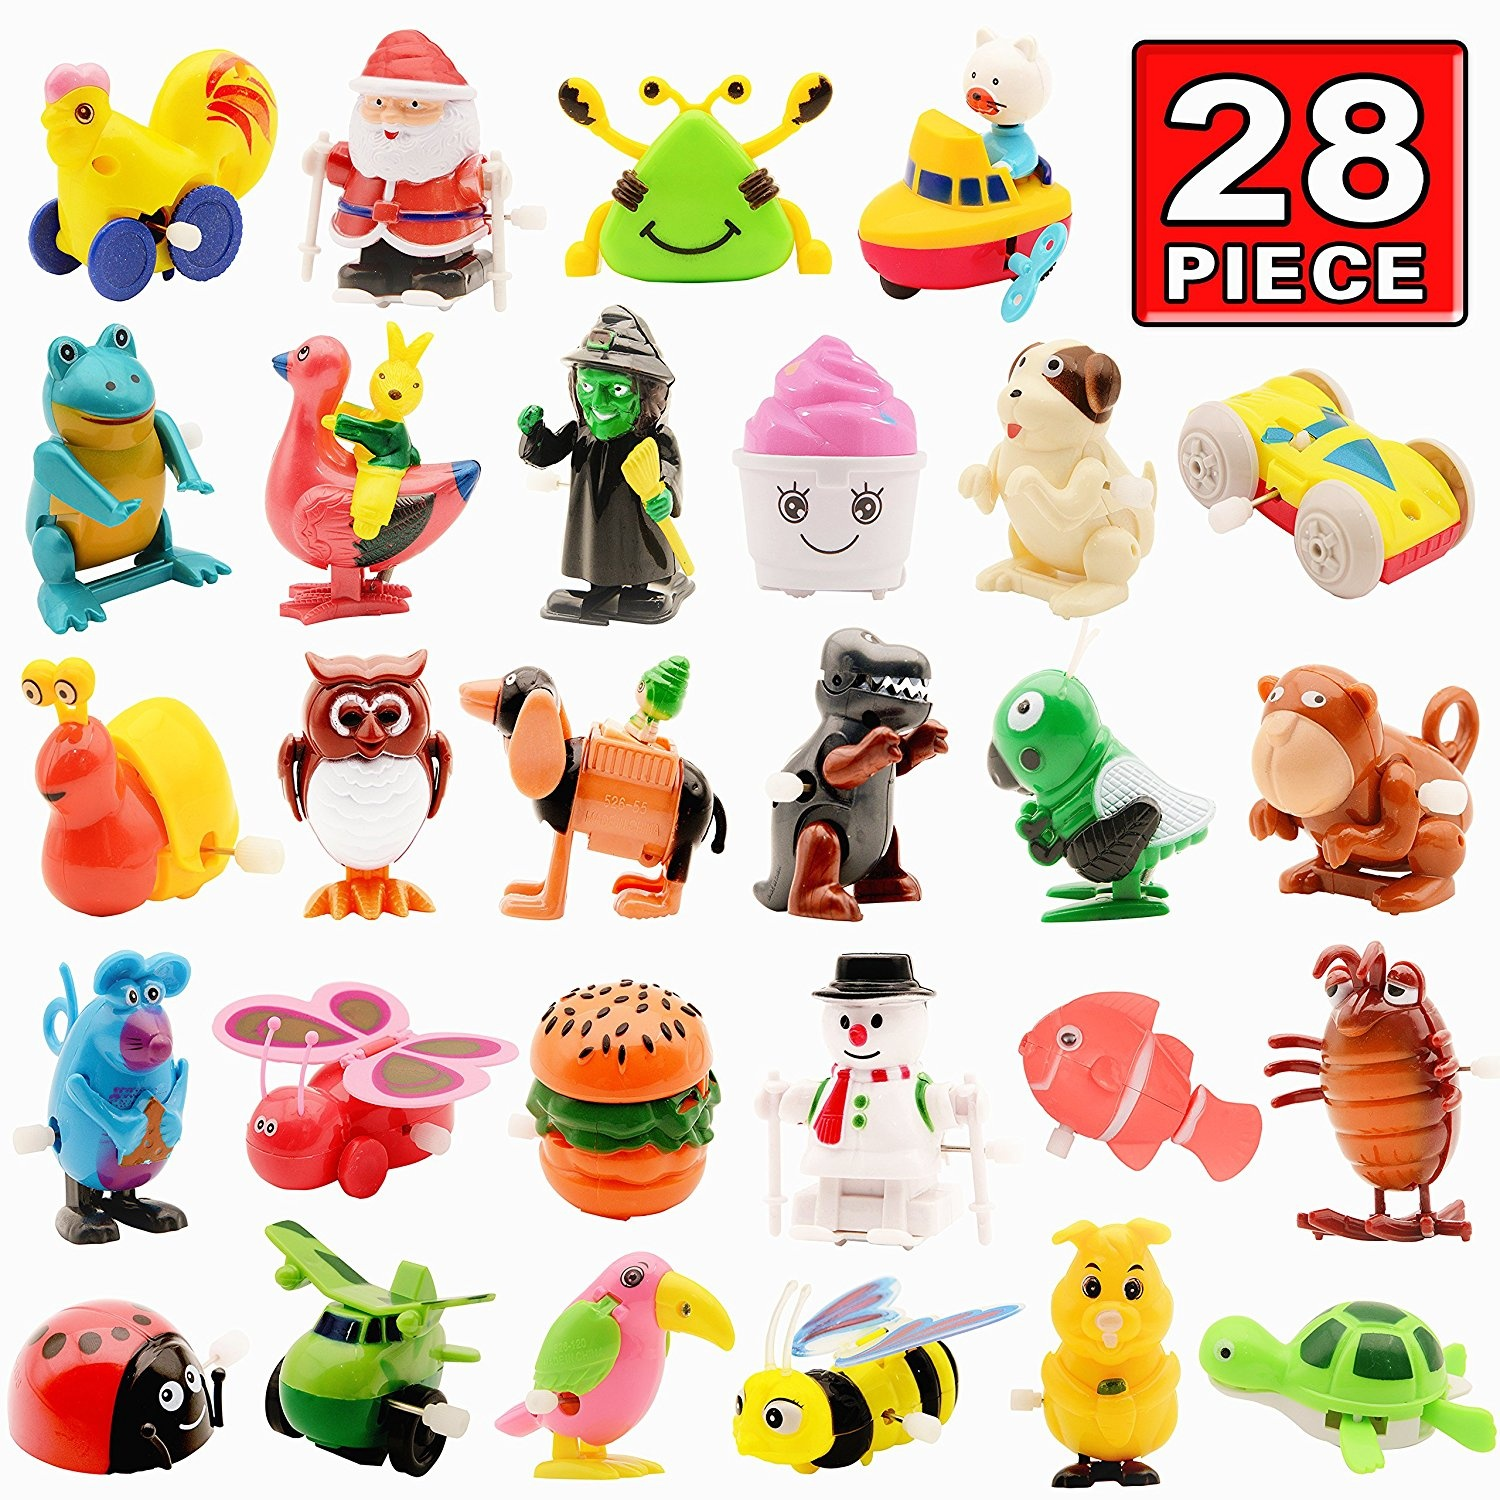 Wind Up Toy28 Pack Assorted Clockwork Toy Setoriginal Colour Animal Party Favours Great Gift For Boys Girls Kids Toddlers By Original Color